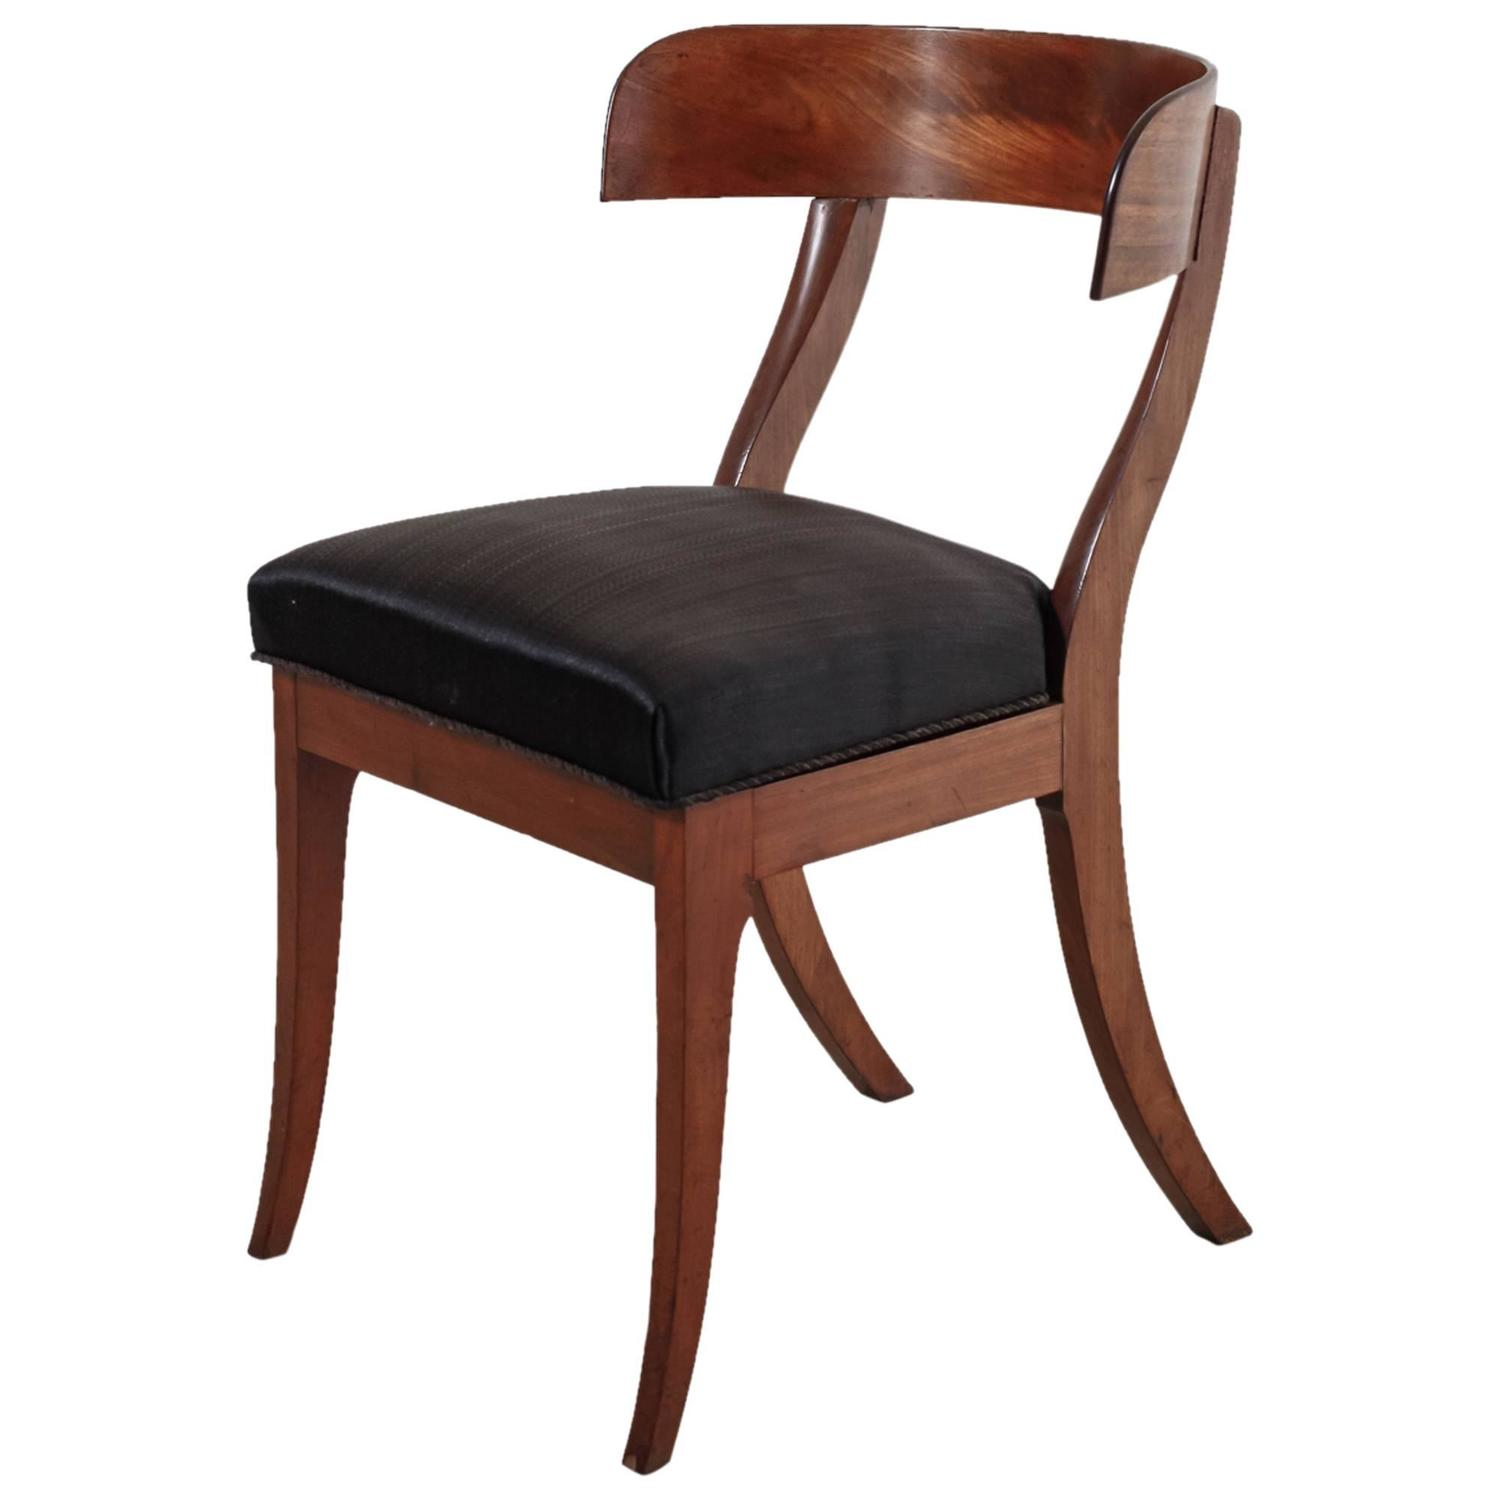 Danish Mahogany Klismos Chair with Horsehair Seat 19th Century at